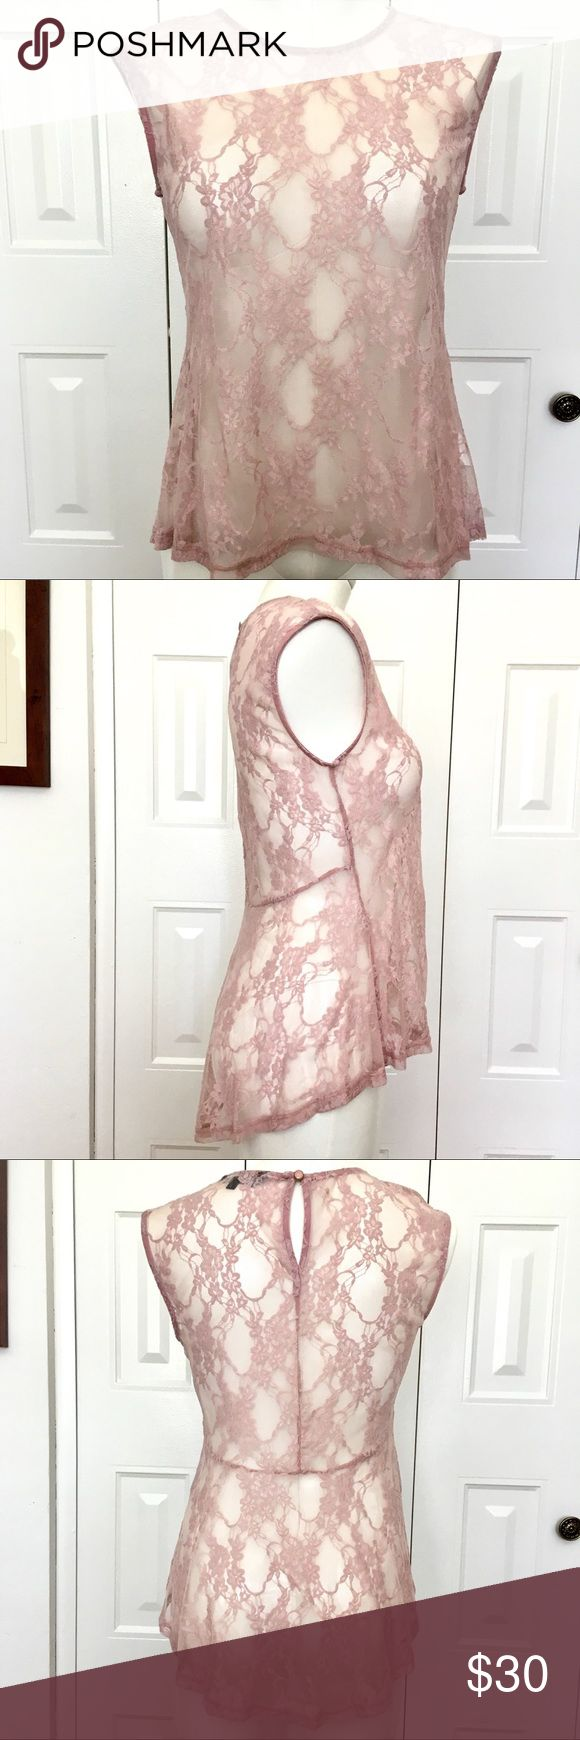 LOB rose lace peplum top NWOT Pretty dusty rose lace hi-lo peplum top is sheer and sexy and beautiful! Brand new, without tags, never worn. Size 2 in this international brand is equal to medium.   Party, wedding, date night LOB Tops